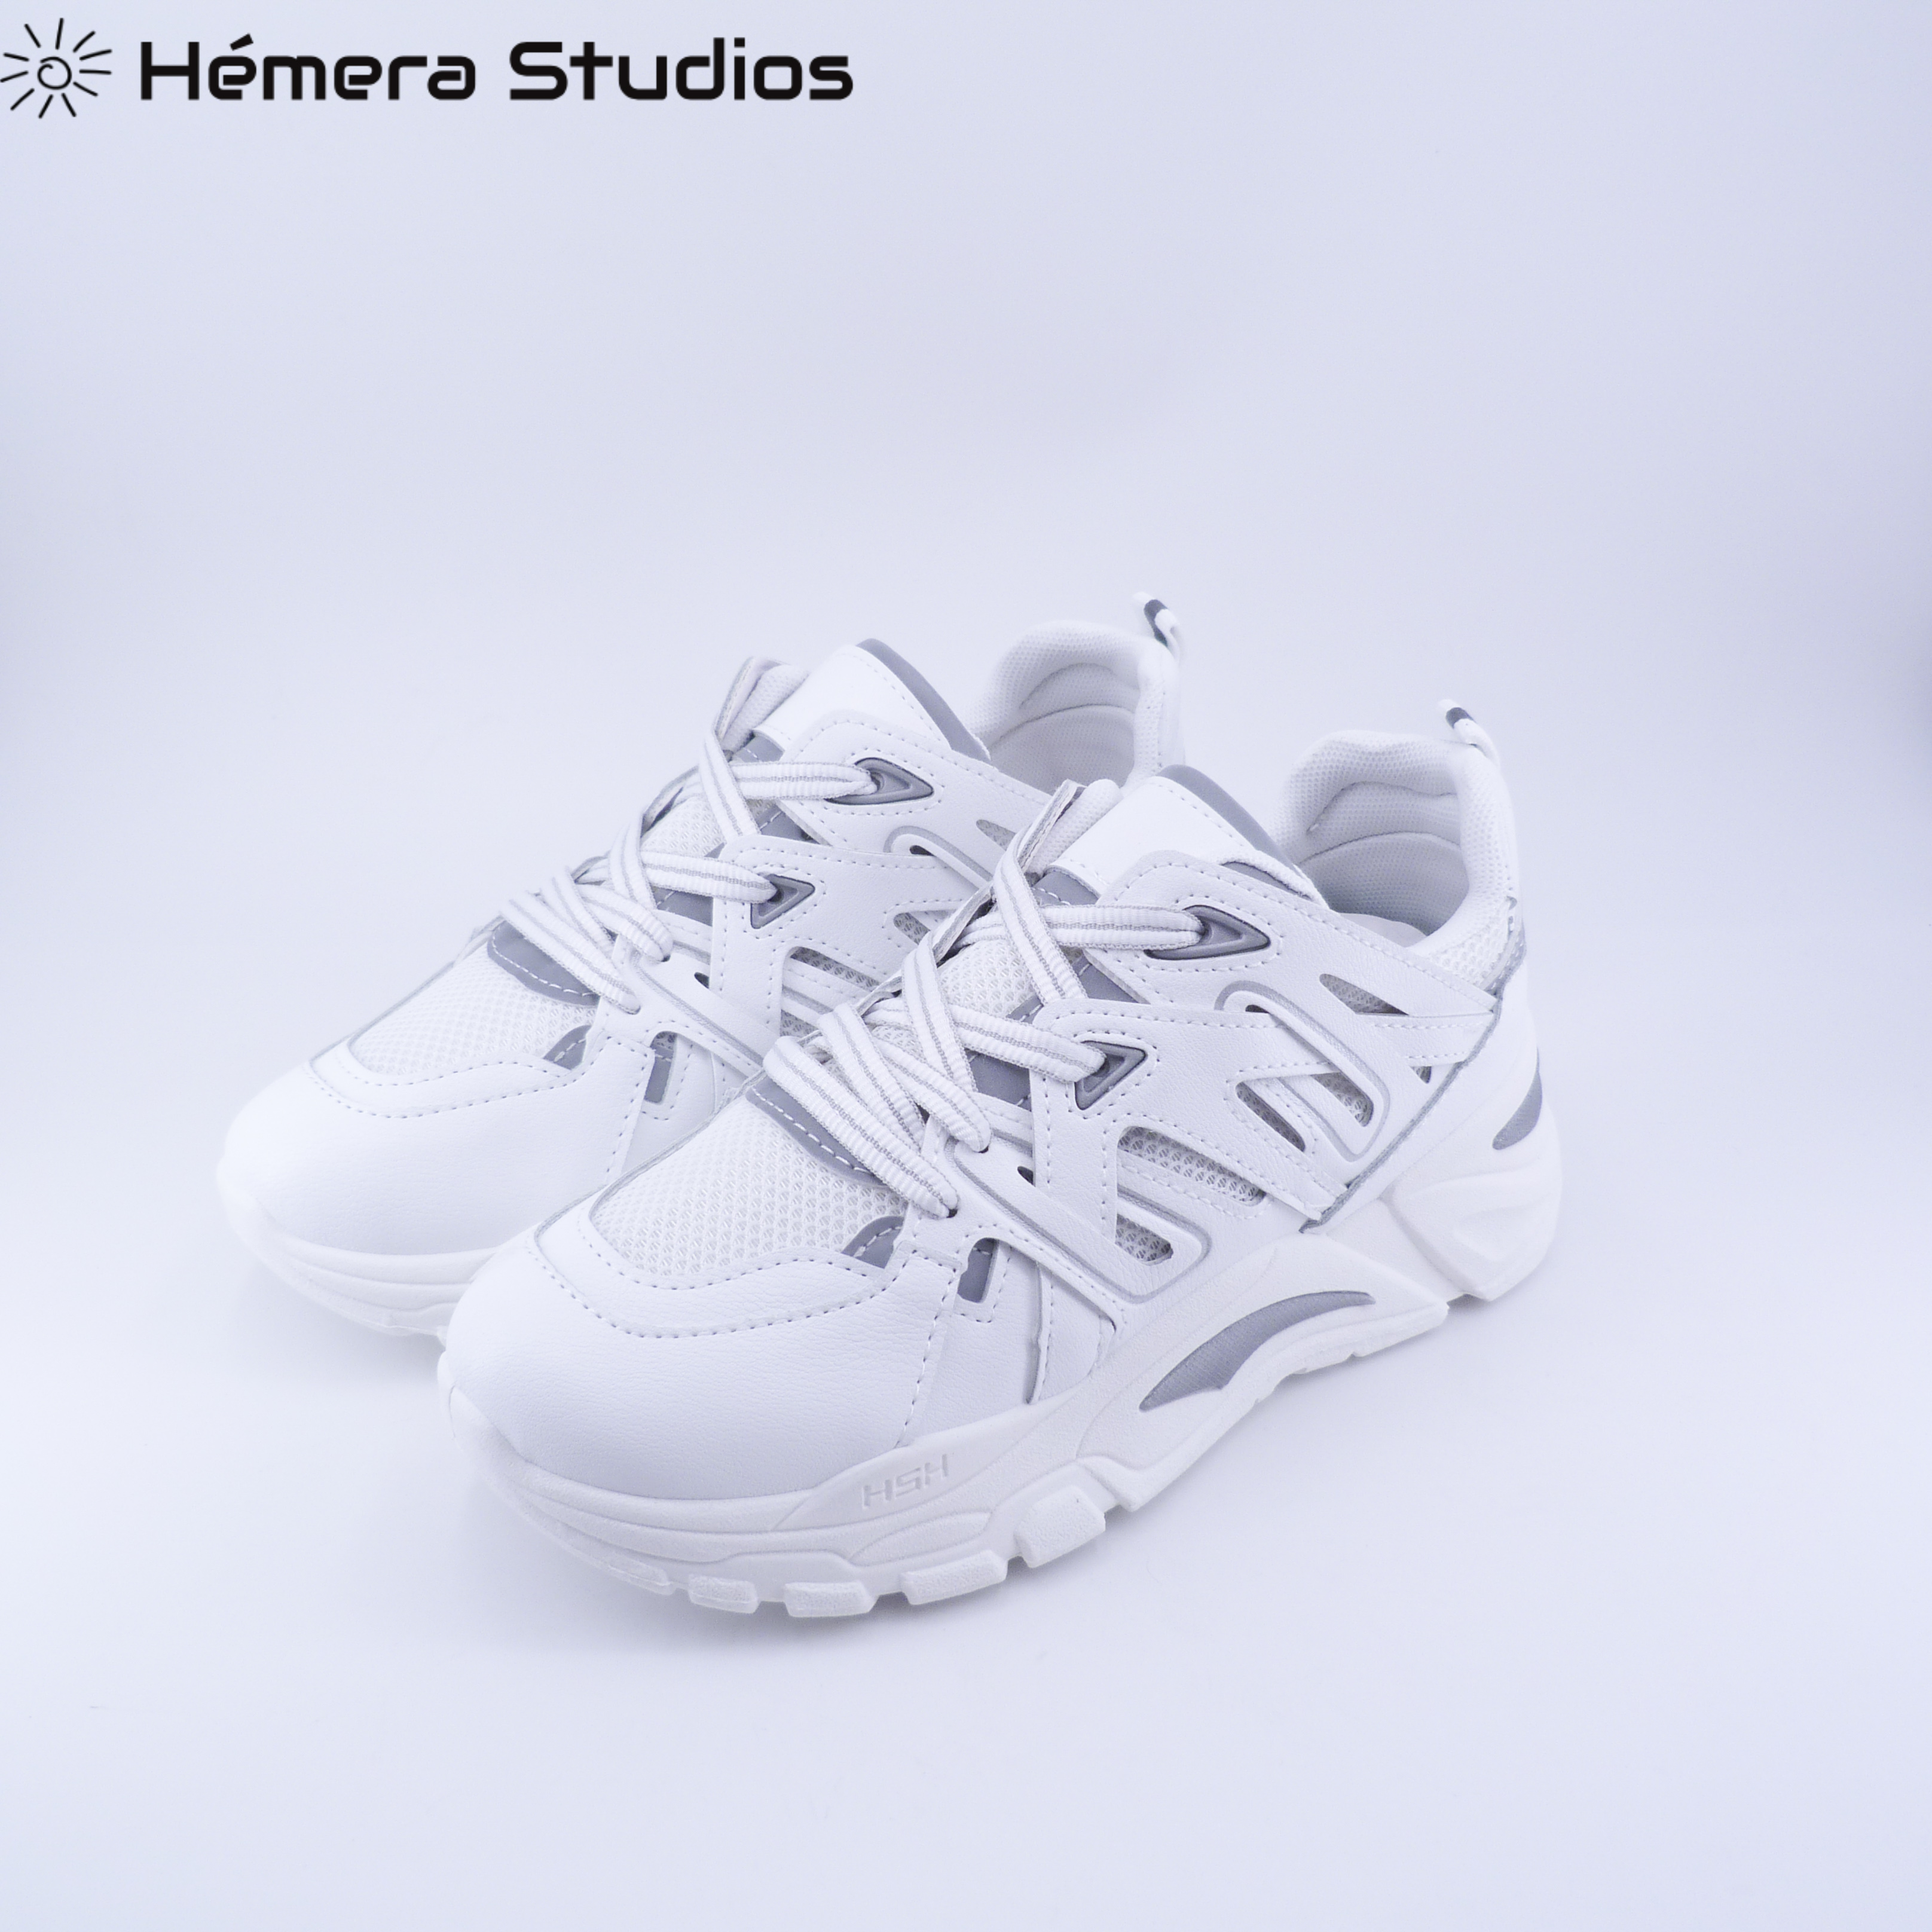 WOMAN SHOES 2019 WOMEN SHOES CASUAL WITH CORDS WITH PLATFORM